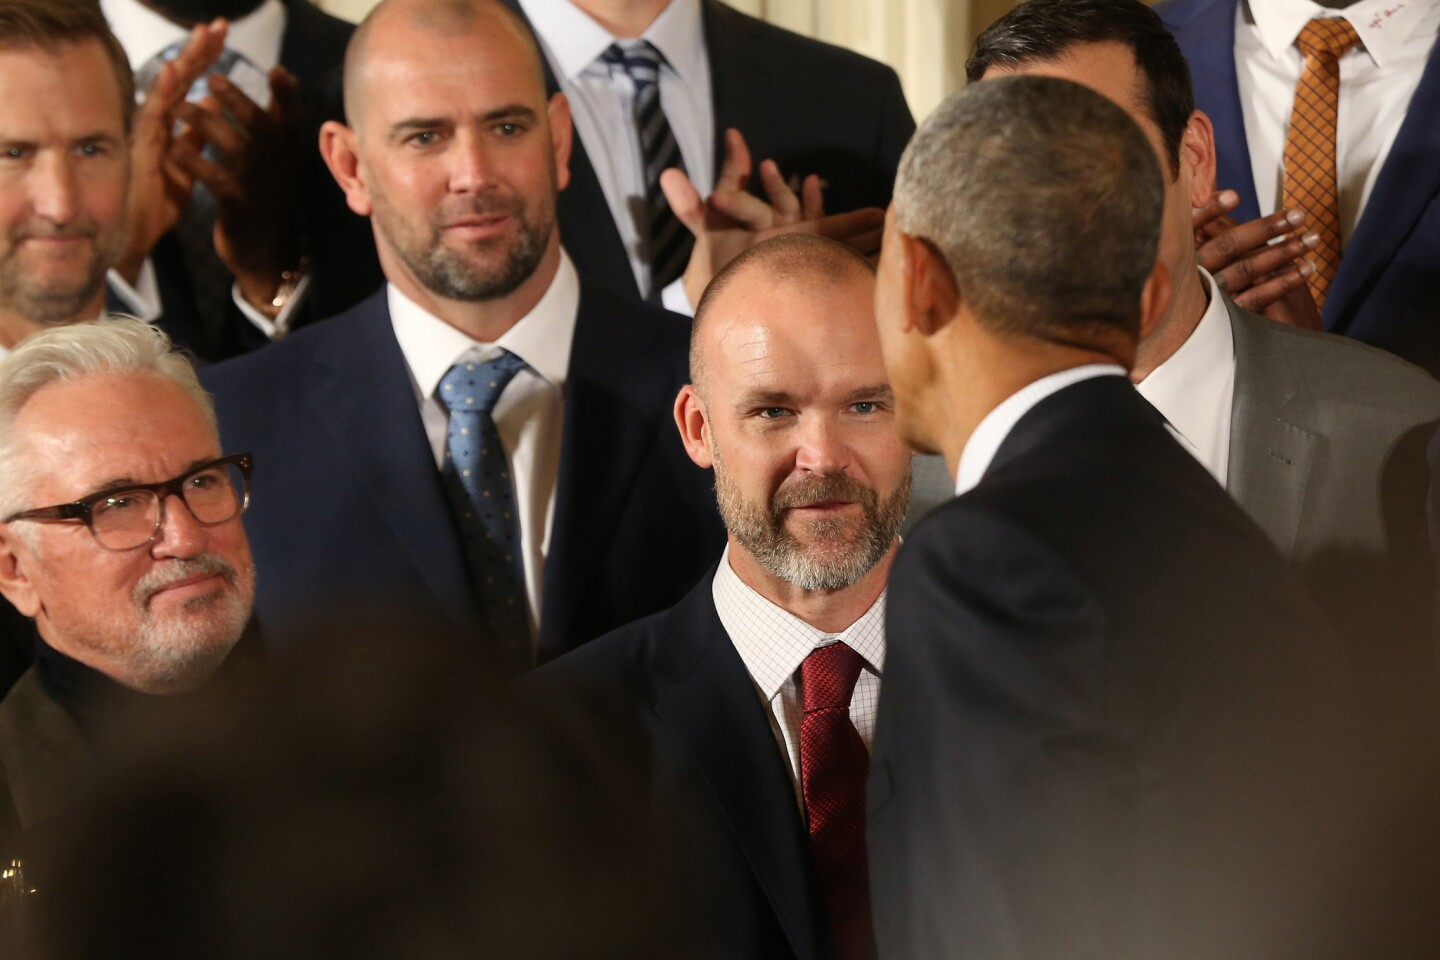 Jan 16, 2017; Washington, DC, USA; President Barack Obama shakes hands with retired Chicago Cubs catcher David Ross (L) at a ceremony honoring the 2016 World Series Champion Chicago Cubs in the East Room at the White House. Mandatory Credit: Geoff Burke-USA TODAY Sports ** Usable by SD ONLY **